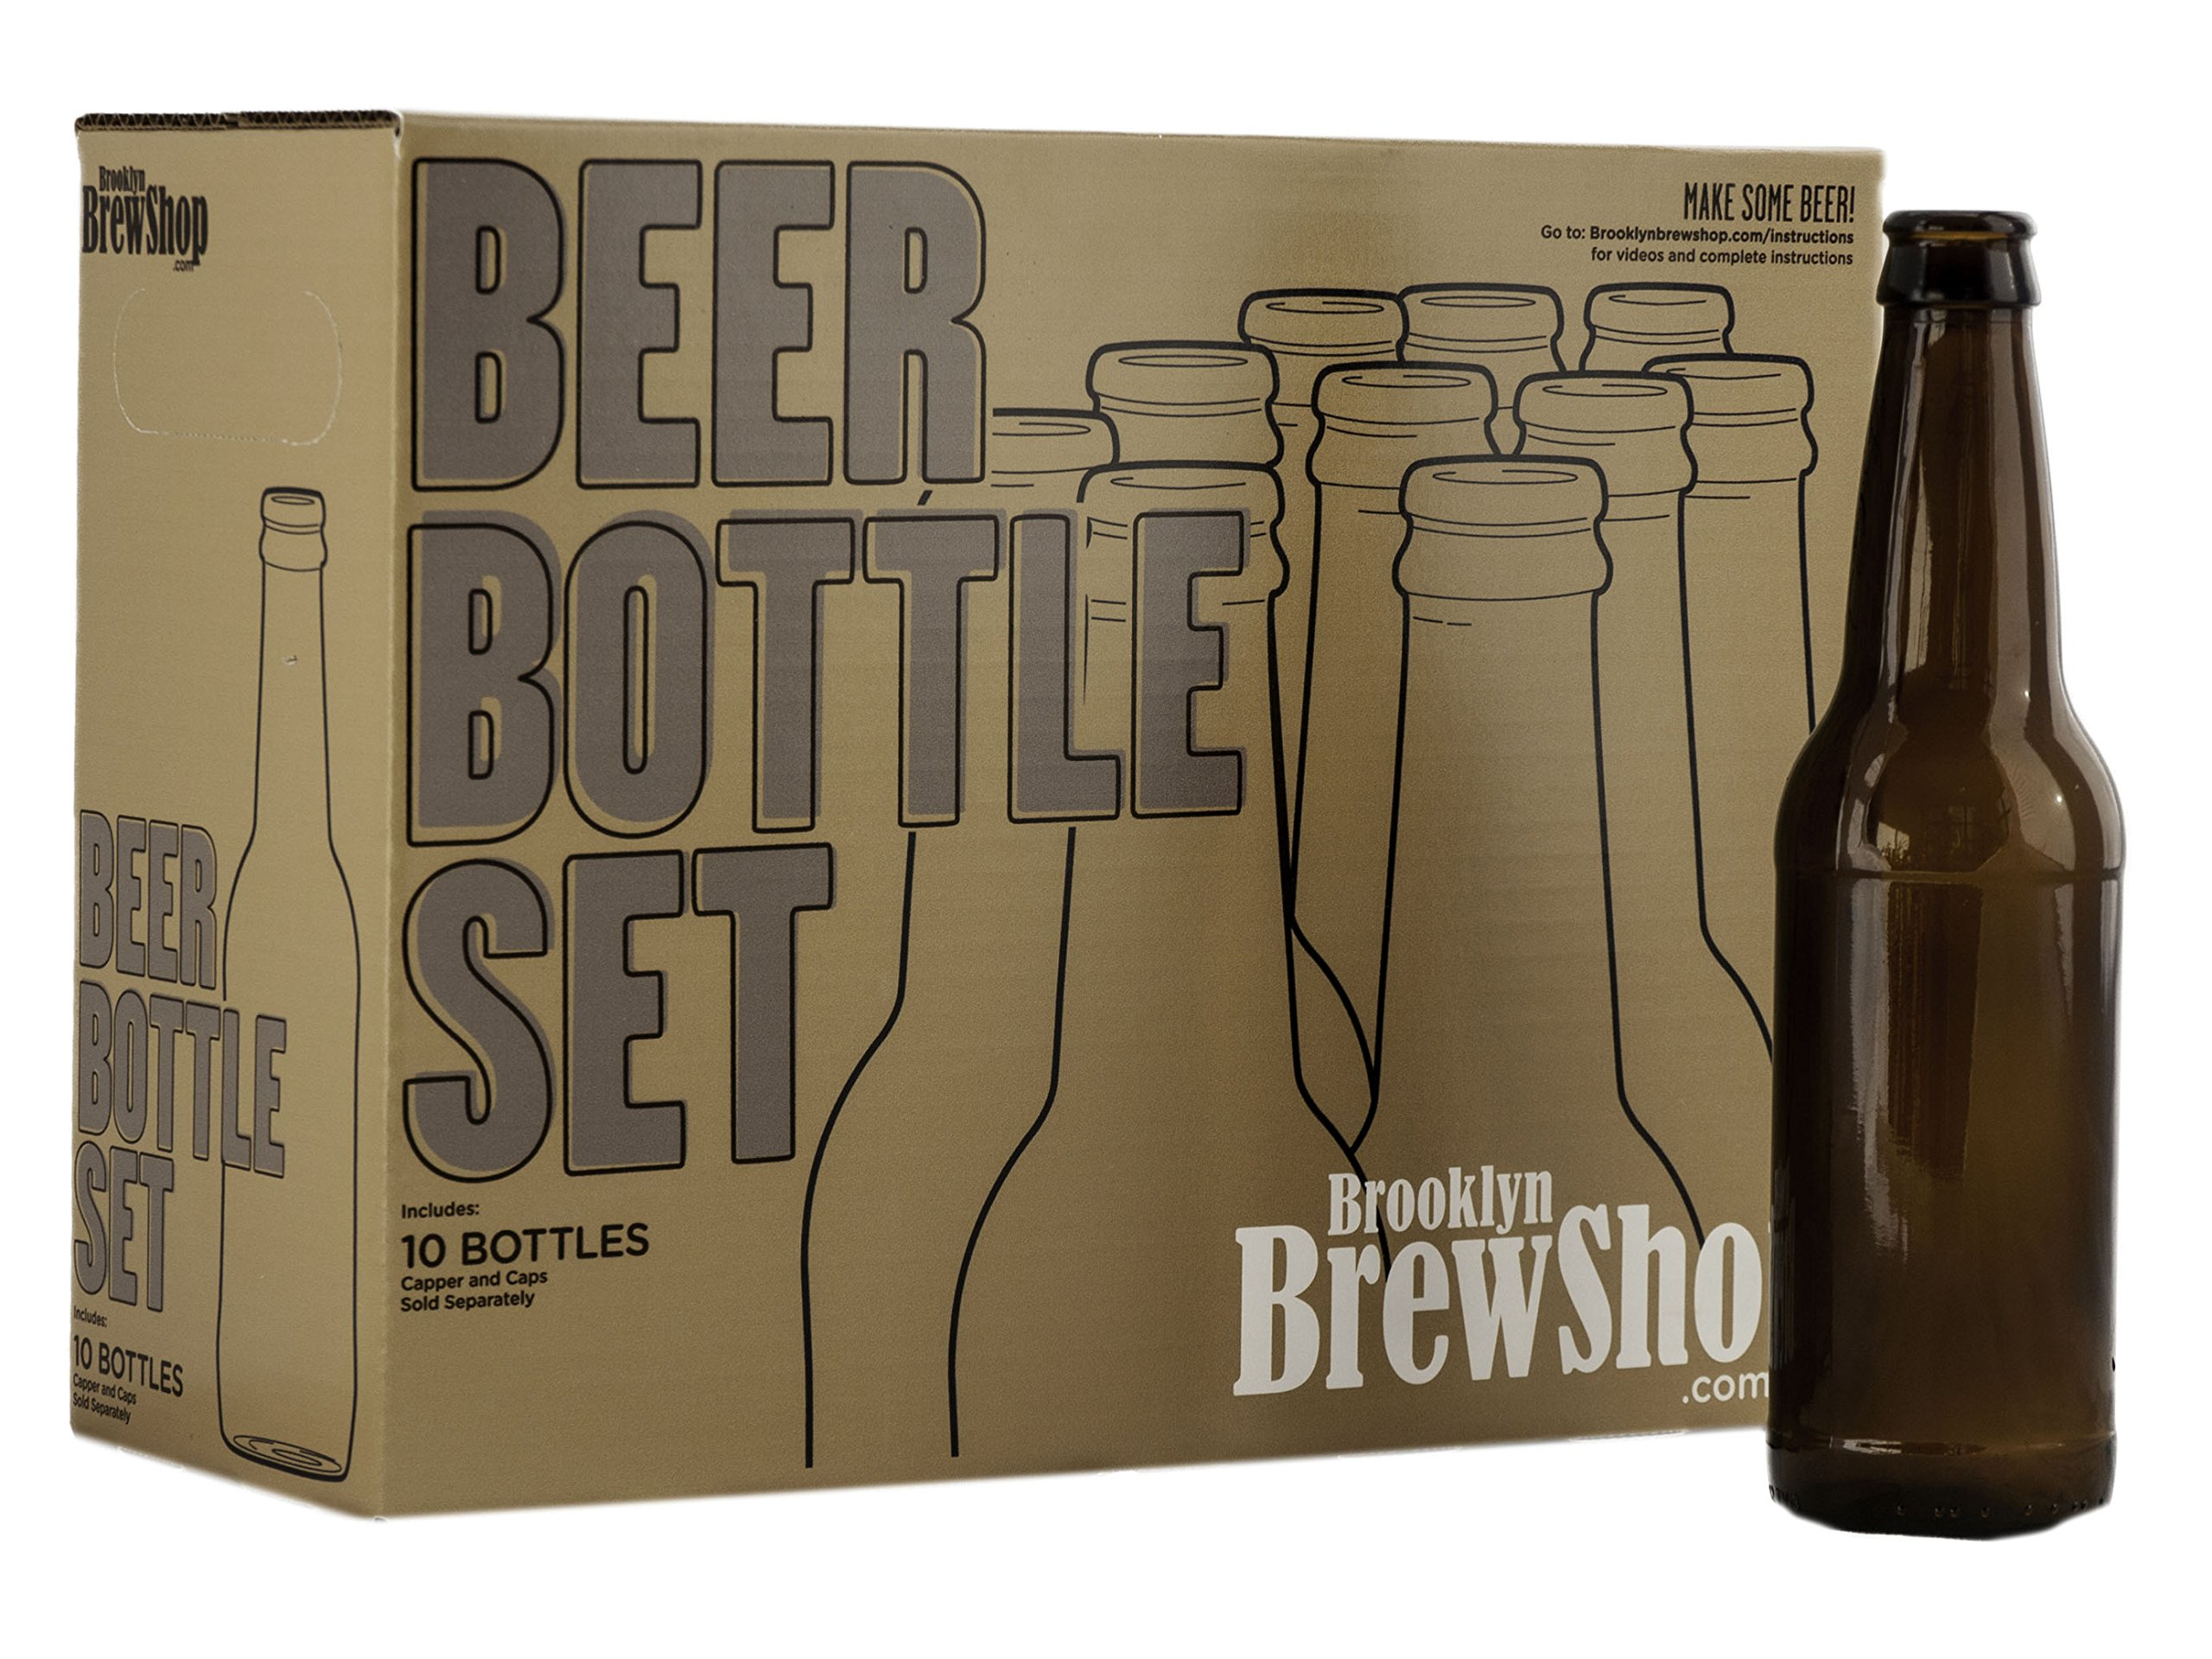 Brooklyn Brew Shop ACBBS Brewing Kit Beer Making Accessories, Brown